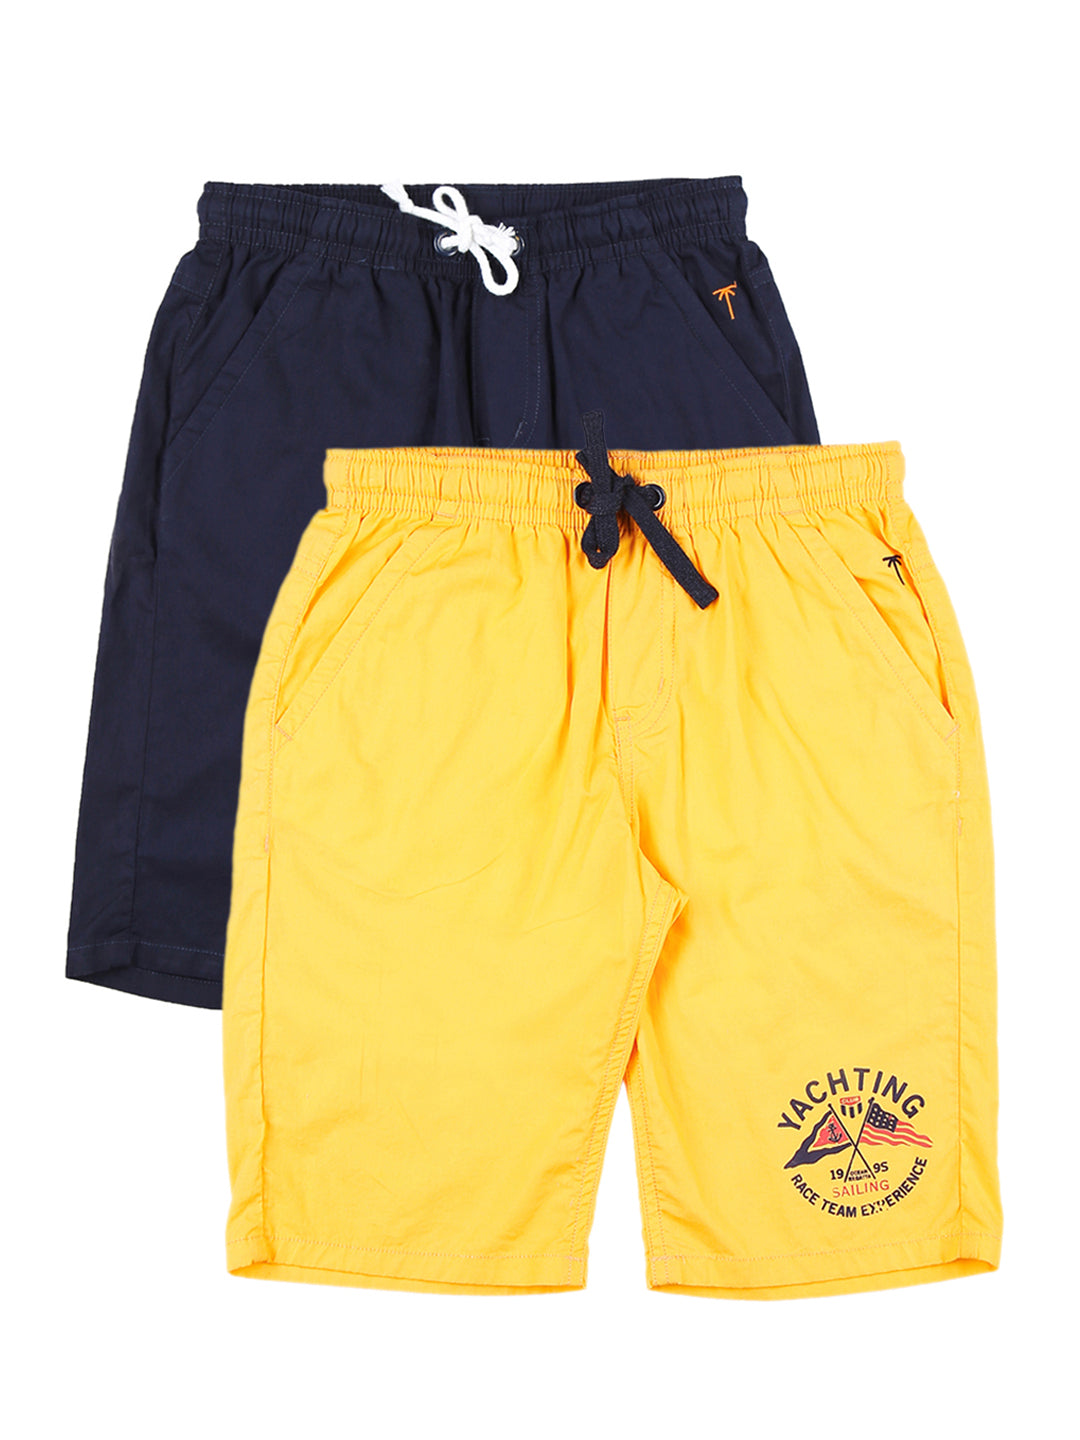 Pack of 2 Bermudas